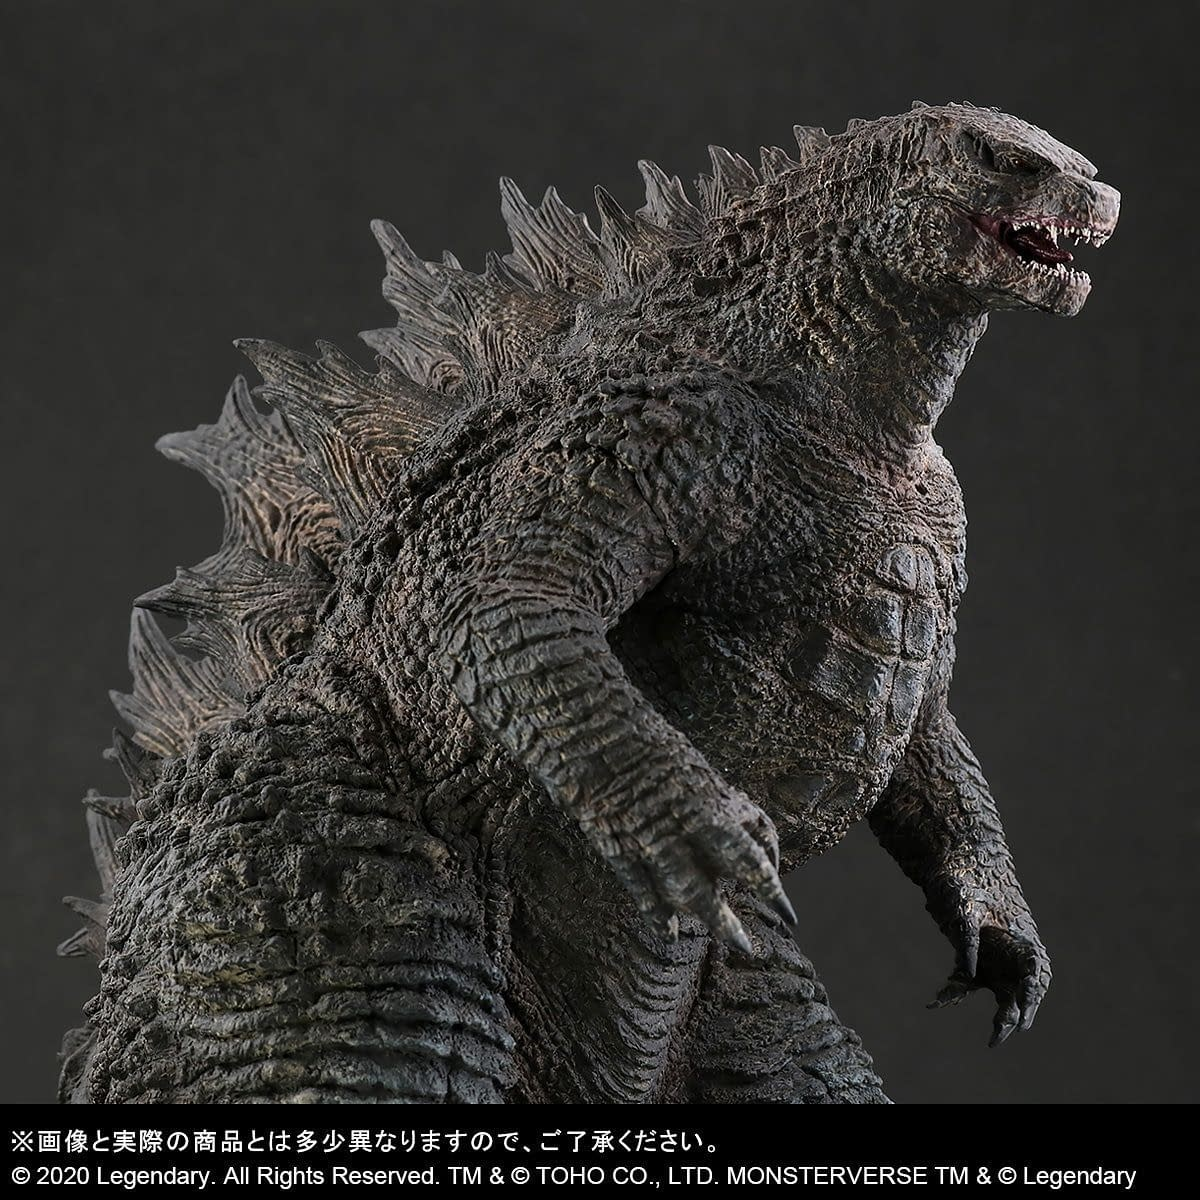 Godzilla King of the Monsters Gets A New Statue from X-Plus